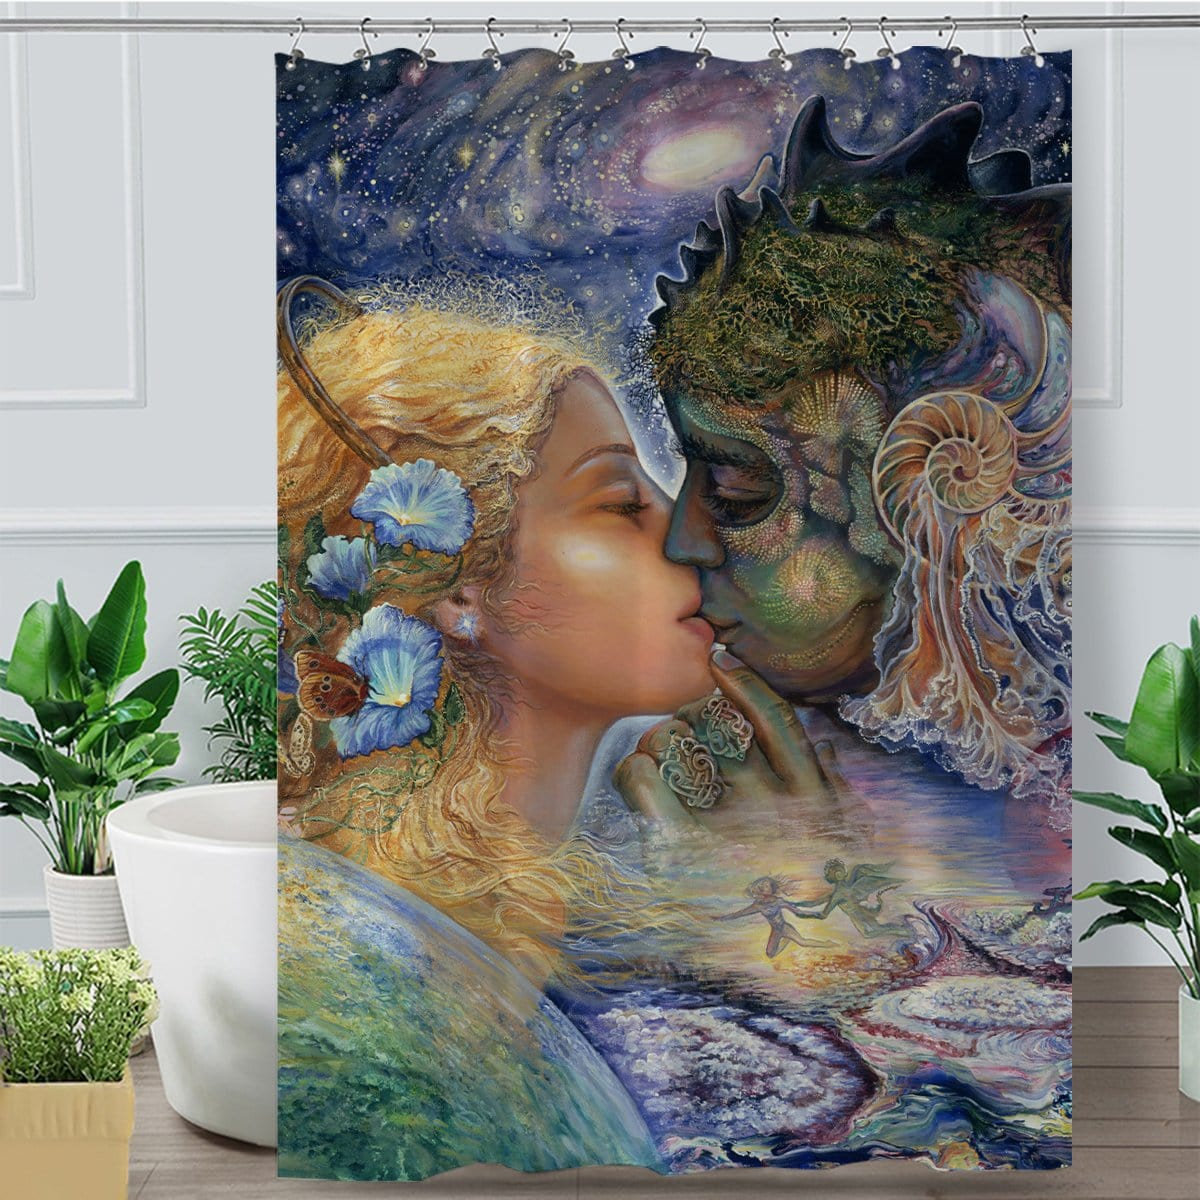 Cosmic Kiss Shower Curtain-Josephine Wall-Little Squiffy